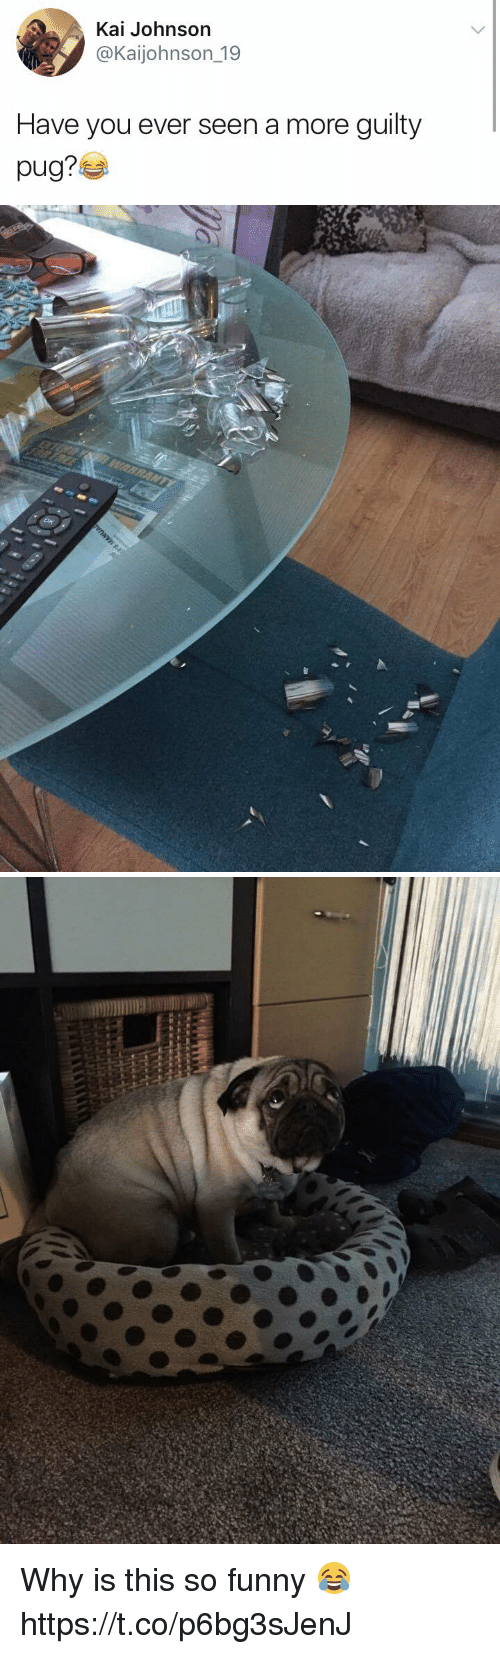 Pugly: Kai Johnson  @Kaijohnson 19  Have you ever seen a more guilty  pug? Why is this so funny 😂 https://t.co/p6bg3sJenJ